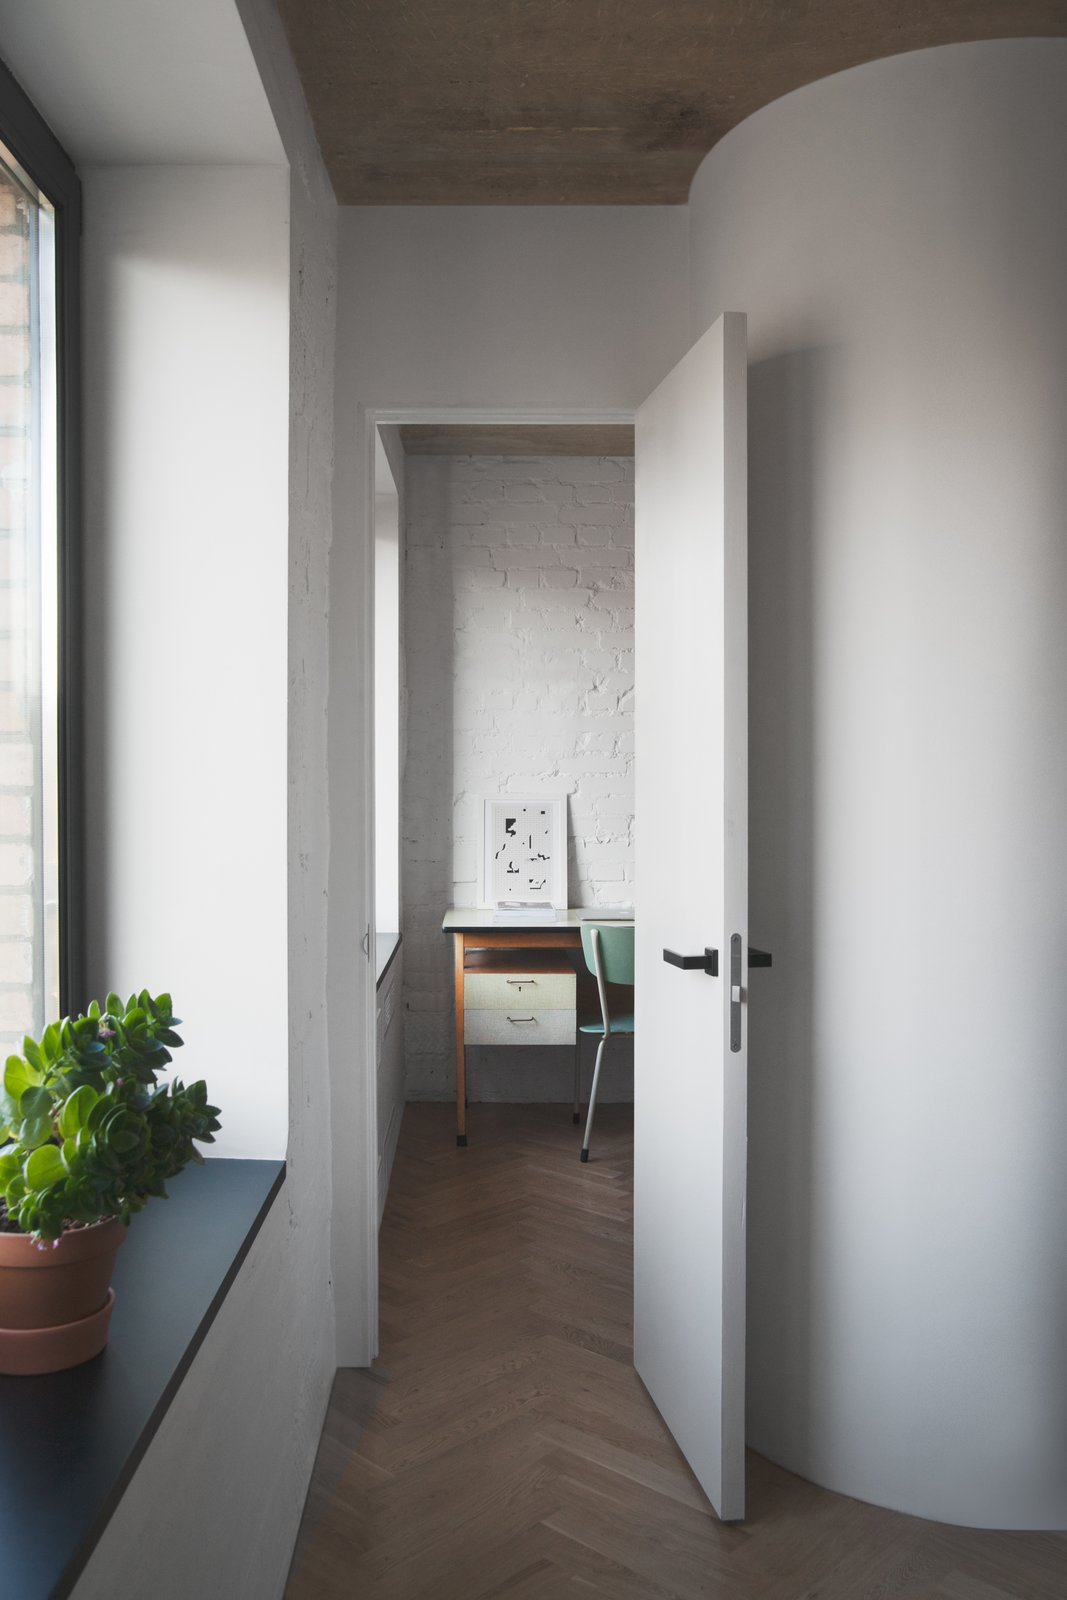 """To make the most out of a small footprint, Vorontsov experimented with some creative partitions. He explains how """"the partitions we built were straight, and then we rounded the corners slightly in the studio"""" to create a little extra room. """"We left the doors without architraves, and punctuated the detail with black doorknobs.""""  Soviet Intelligentsia by Caroline Wallis"""